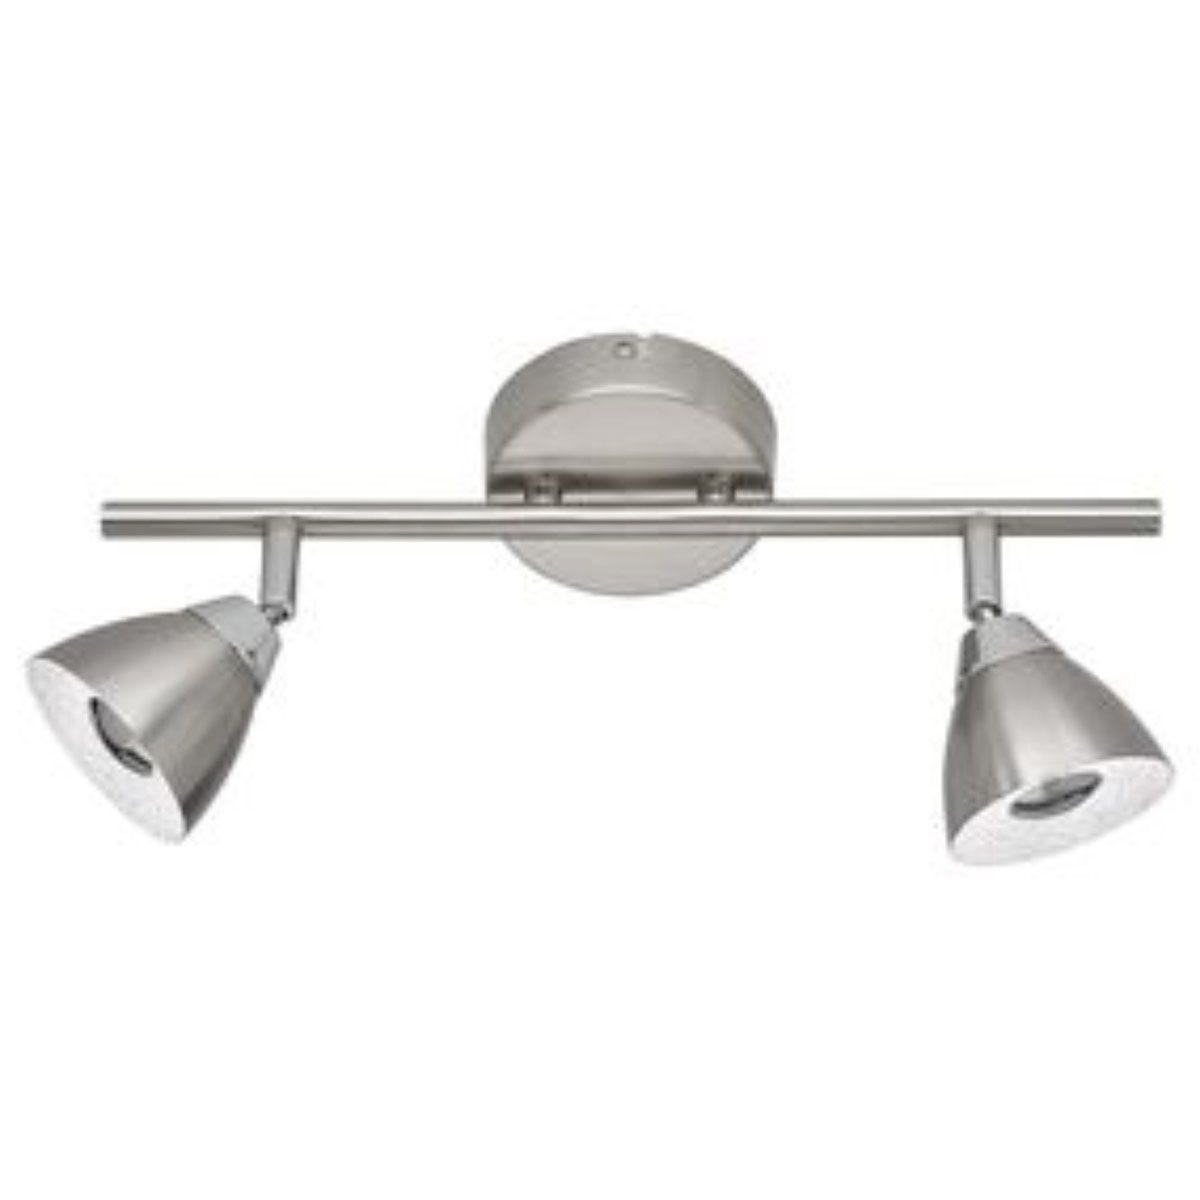 Wofi Fres 2 LED Pendant Bar/Spotlight - Nickel Matt Finish